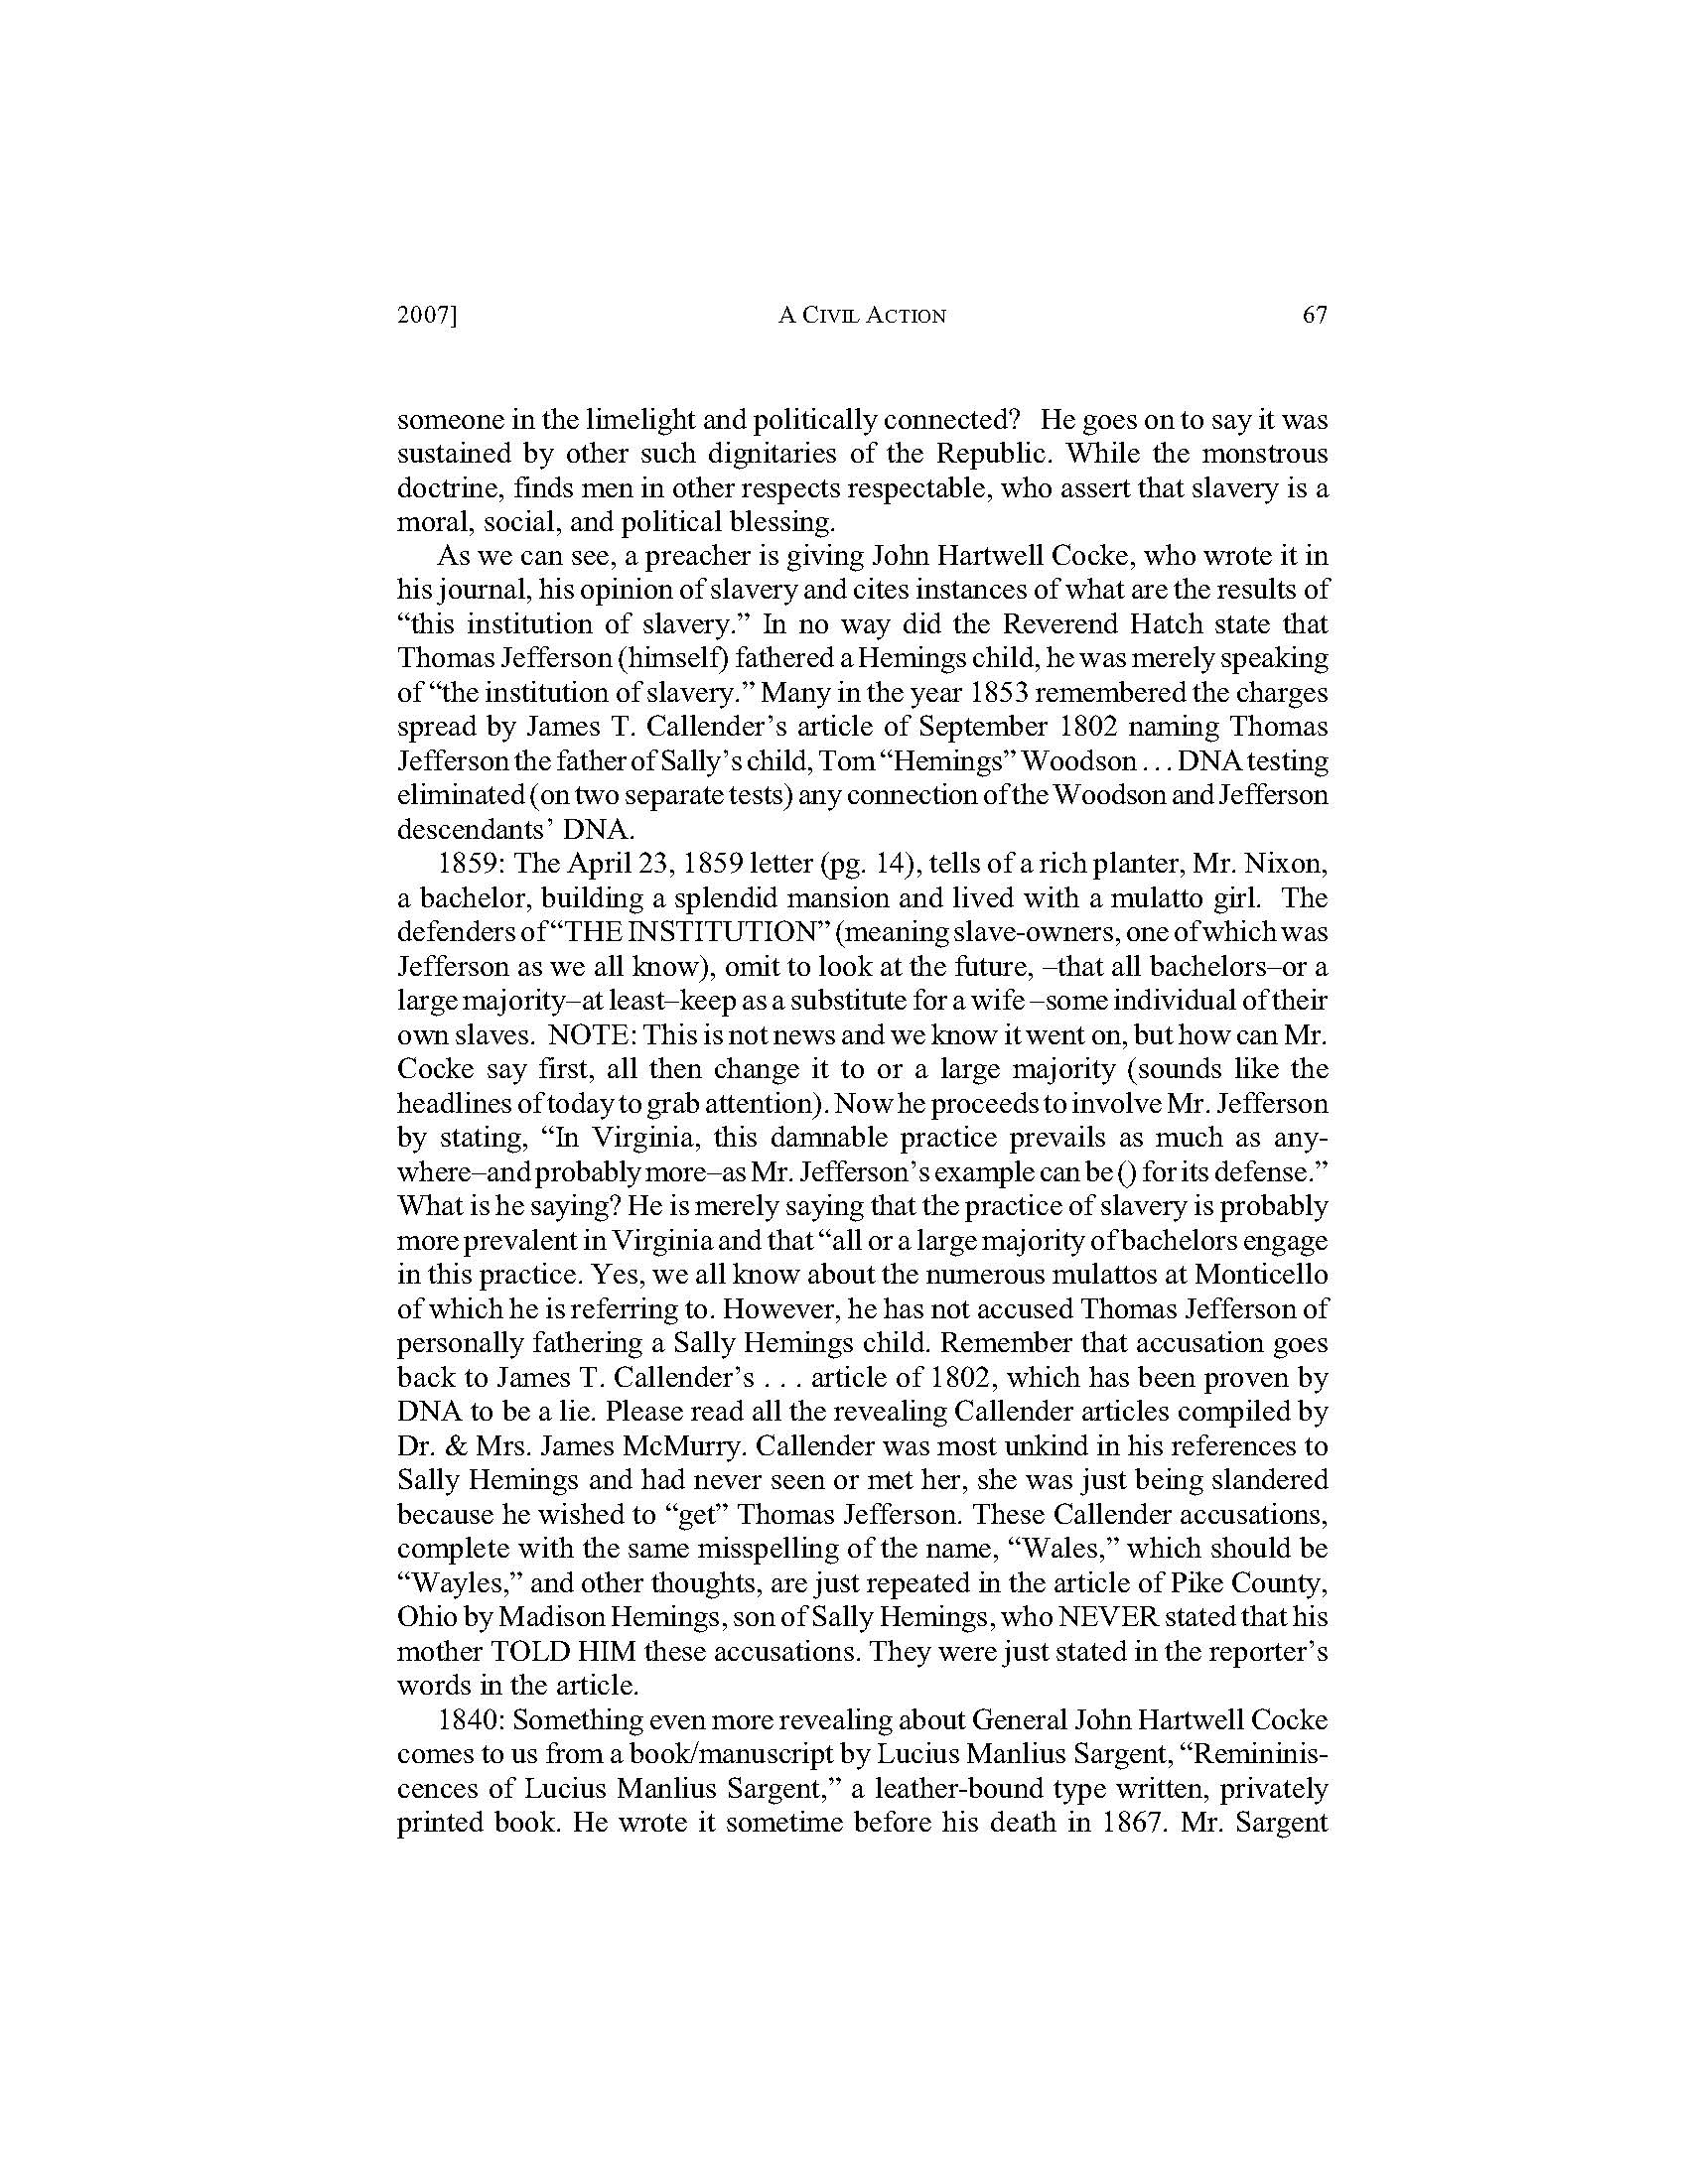 A Civil Action_Page_67.jpg